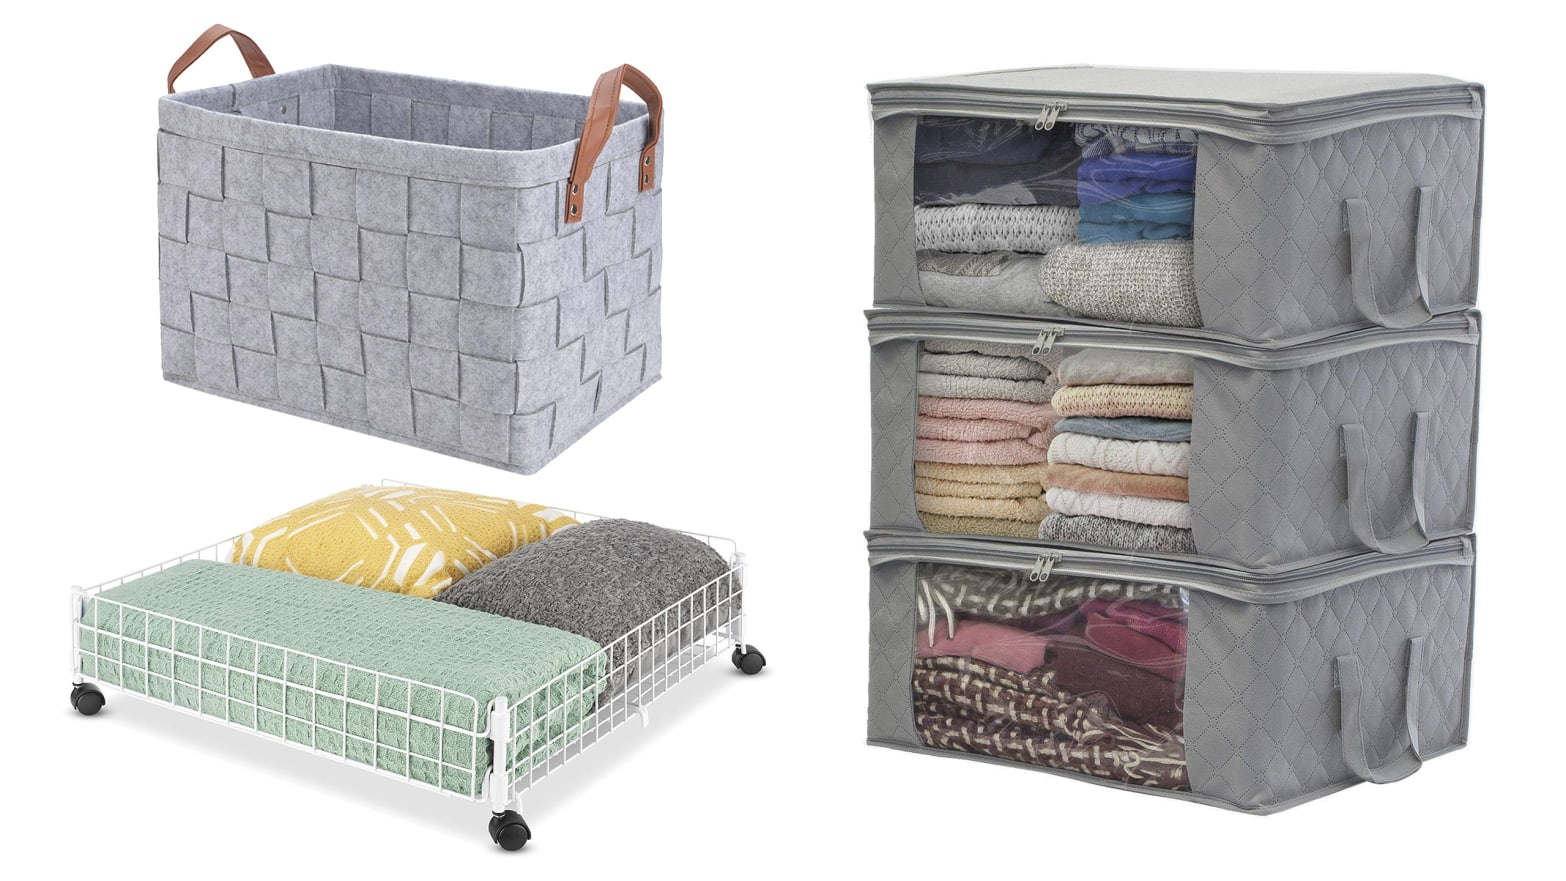 Organize Your Winter Clothes With These Storage Bins from Amazon